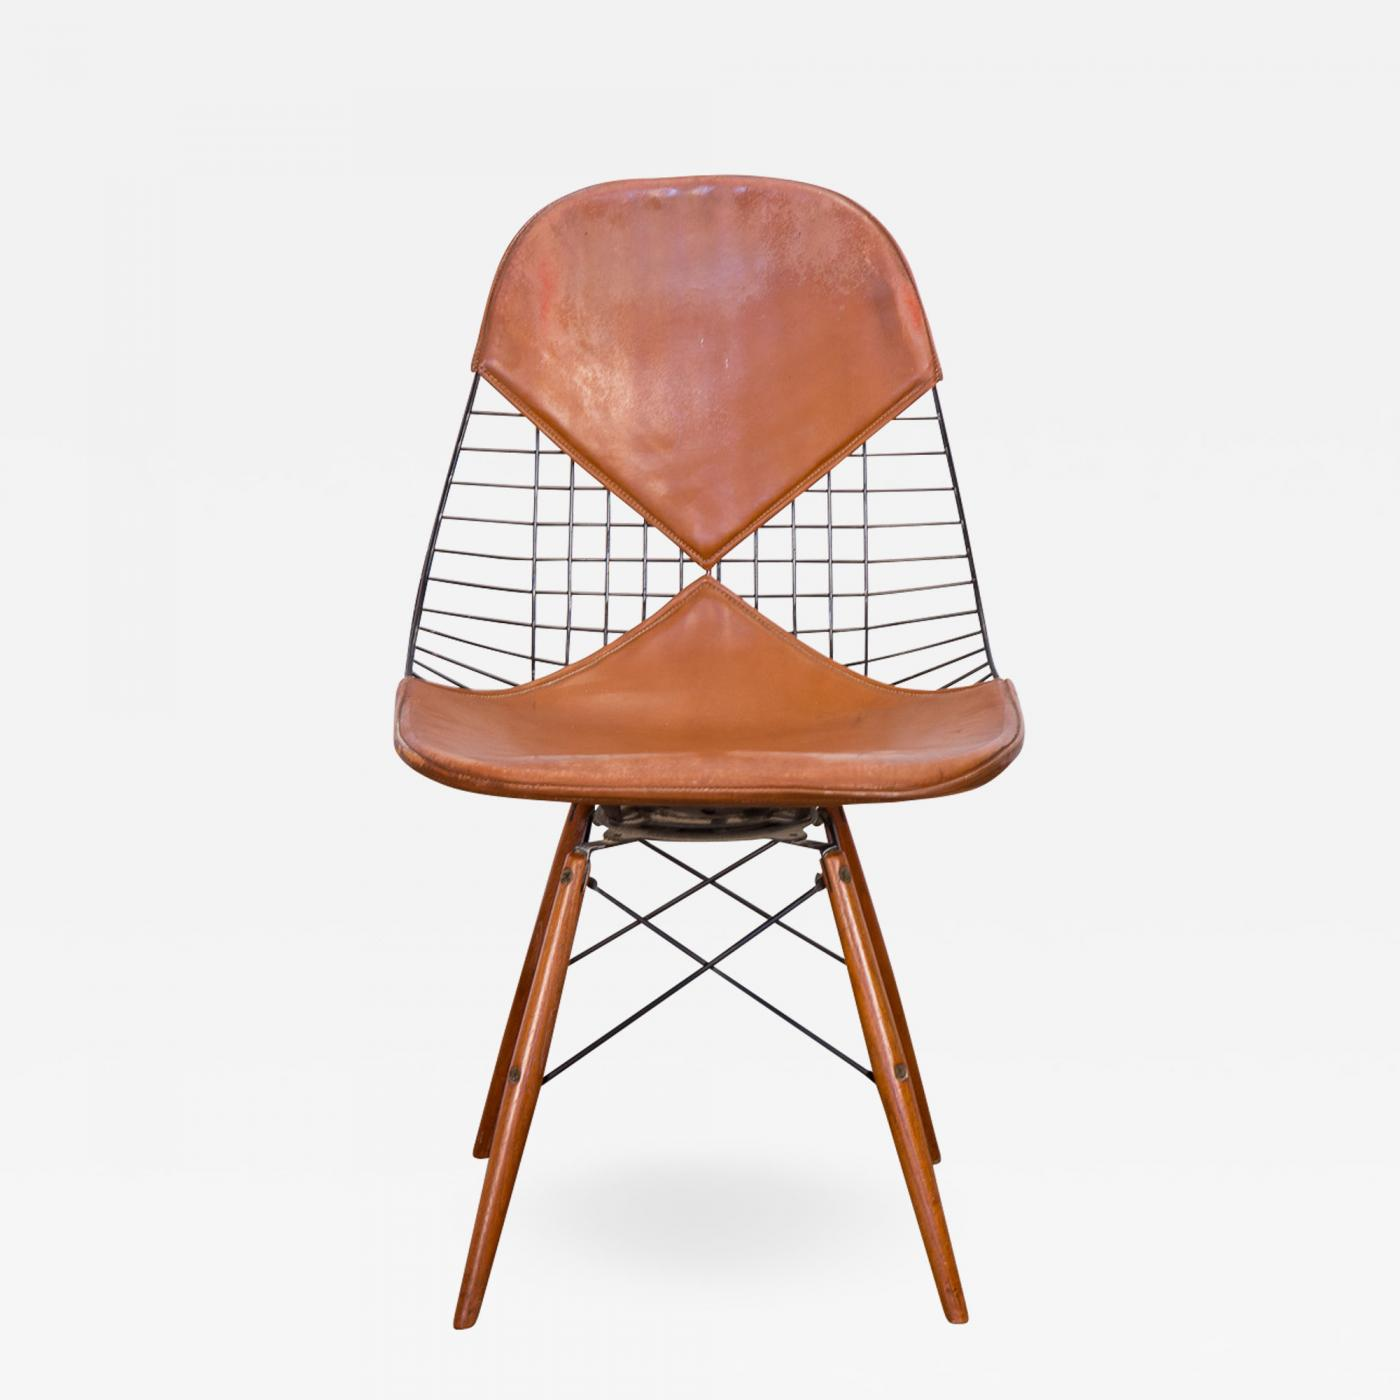 Eames Wire Chair Charles Eames Original Eames Pkw 2 Wire Chair On Dowel Swivel Base